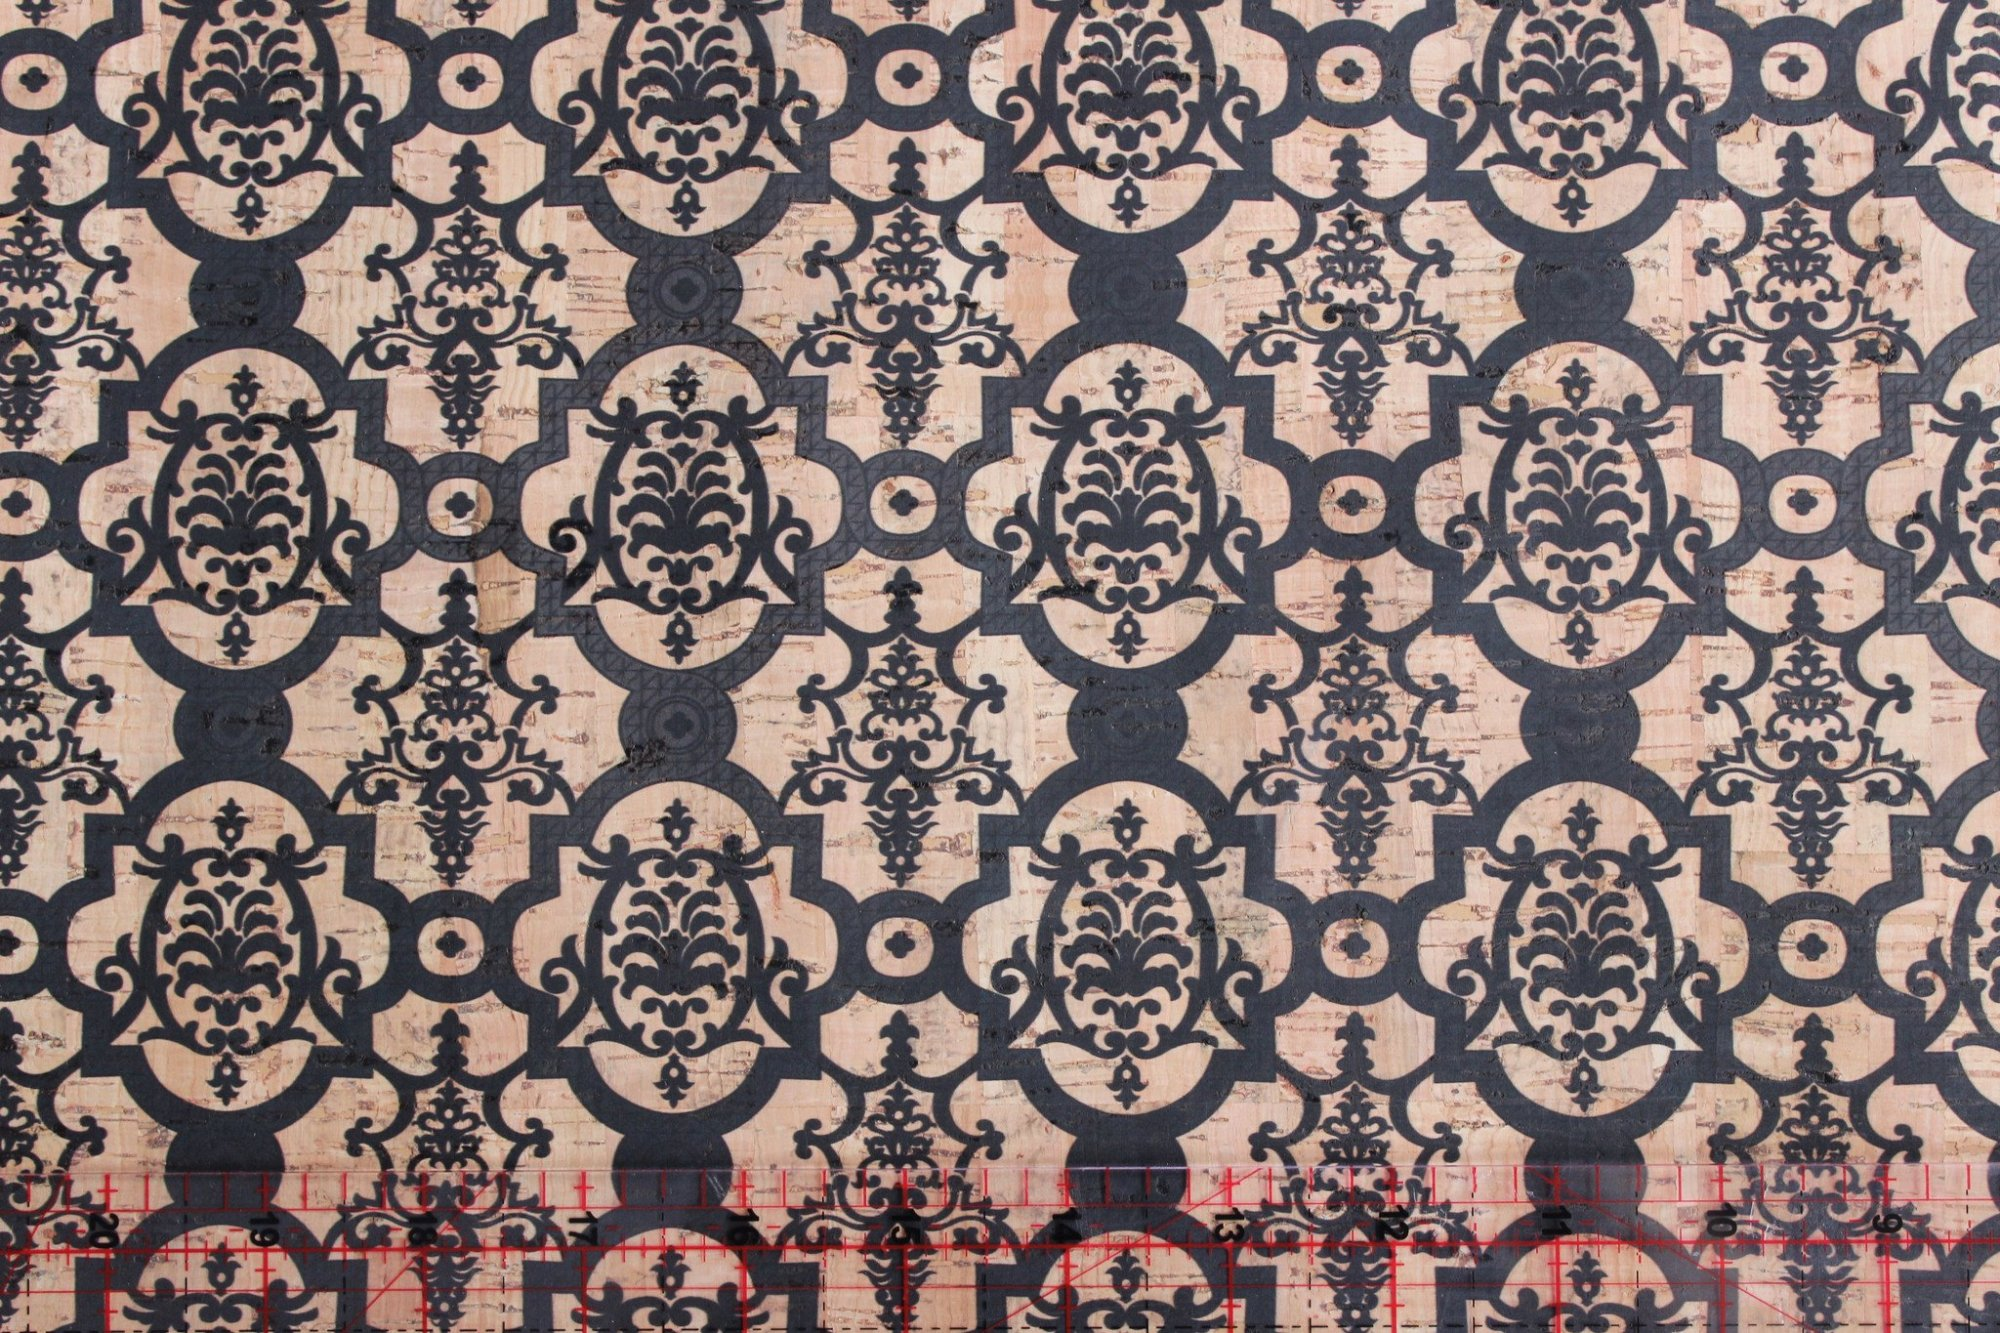 Printed Turtle Damask Cork Fabric (36x36)